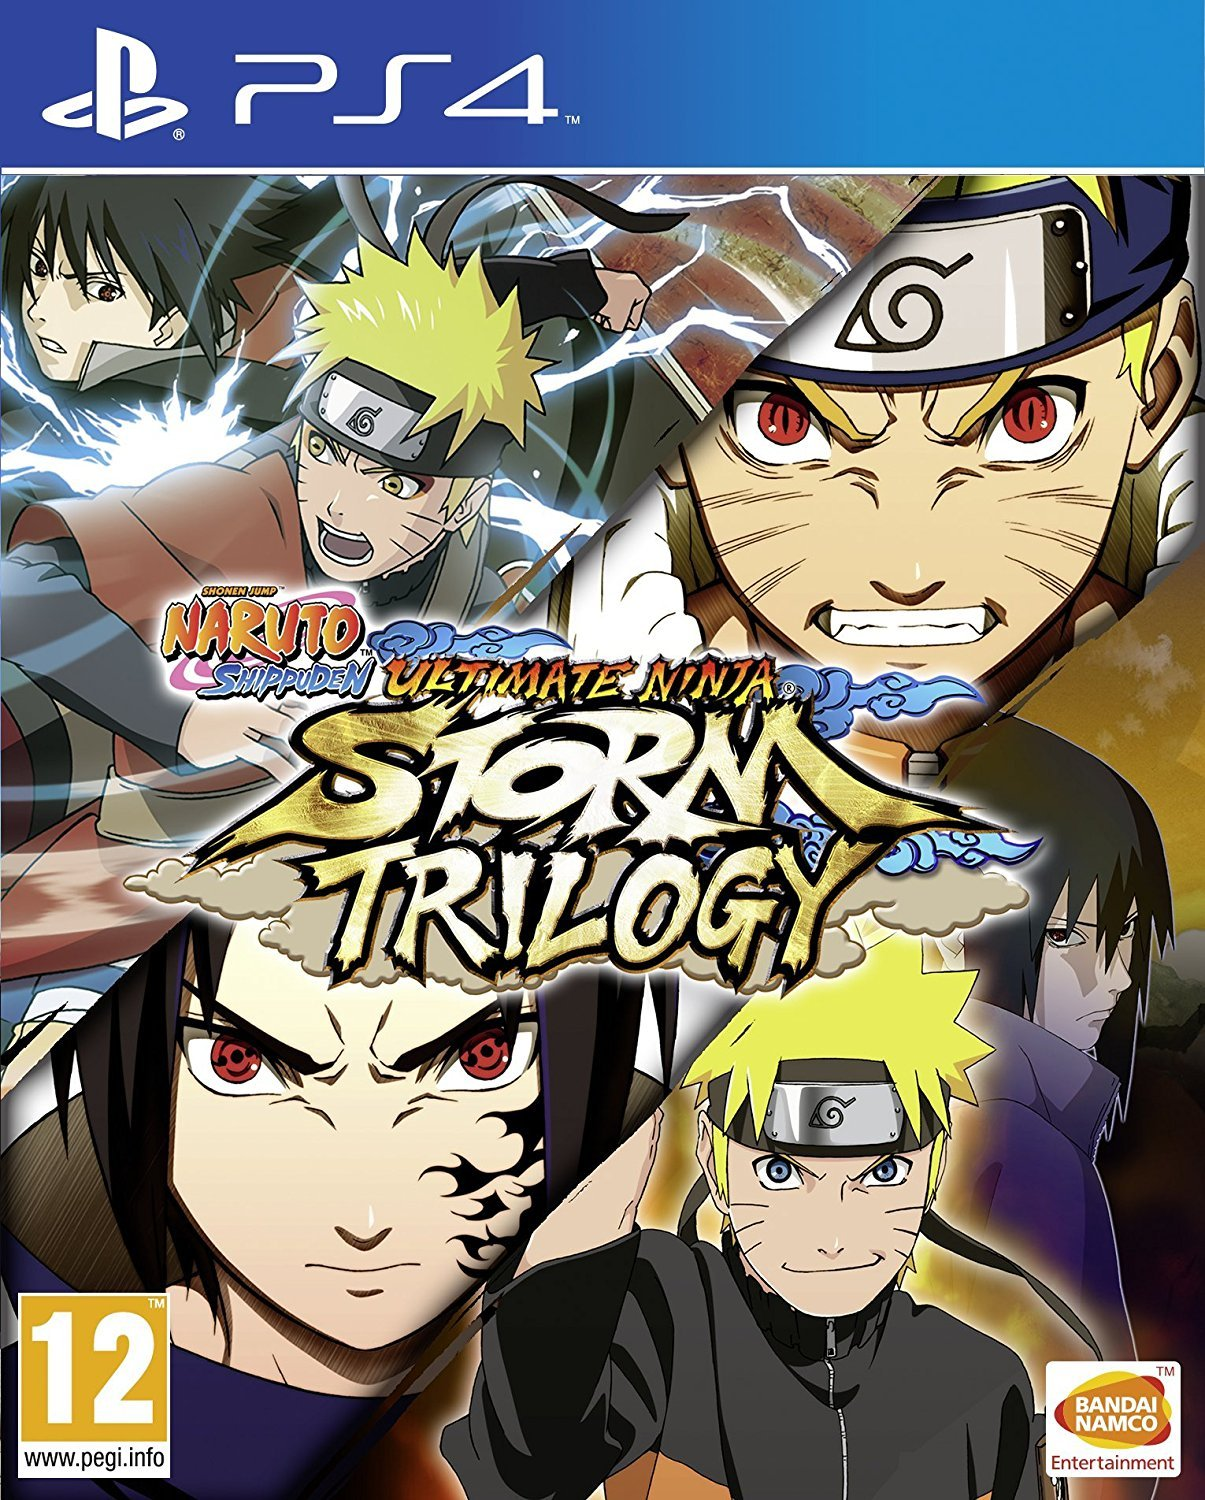 Naruto Shippuden Ultimate Ninja Storm Trilogy PS4 Game